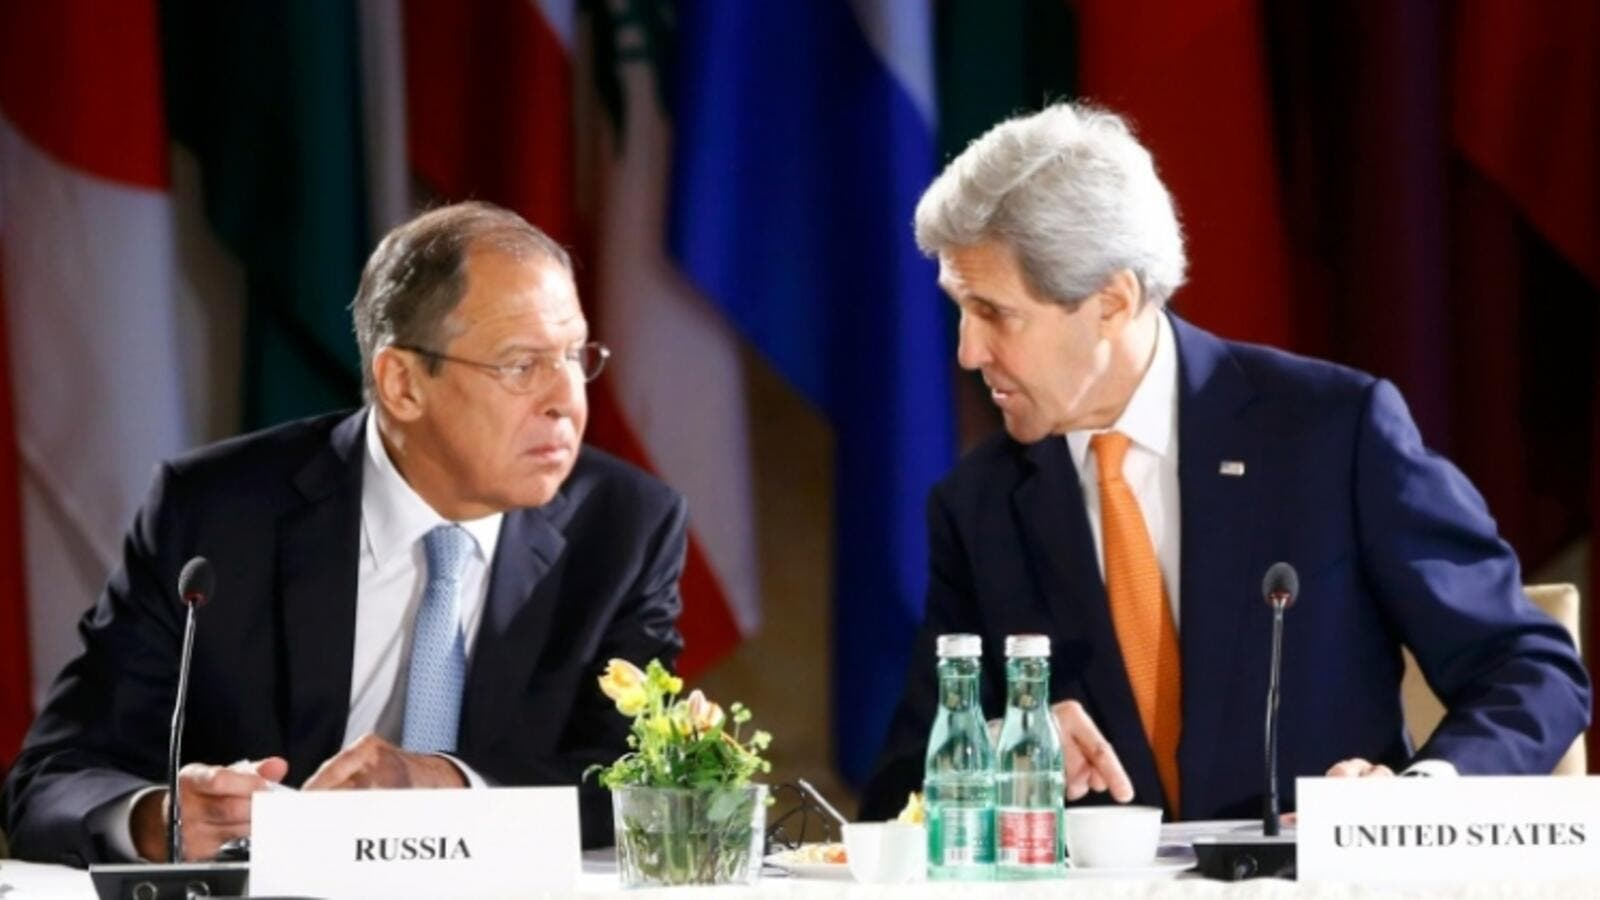 Russian Foreign Minister Sergei Lavrov (L) and US Secretary of State John Kerry lead talks on Syria on May 17, 2016 in Vienna. (AFP/File)